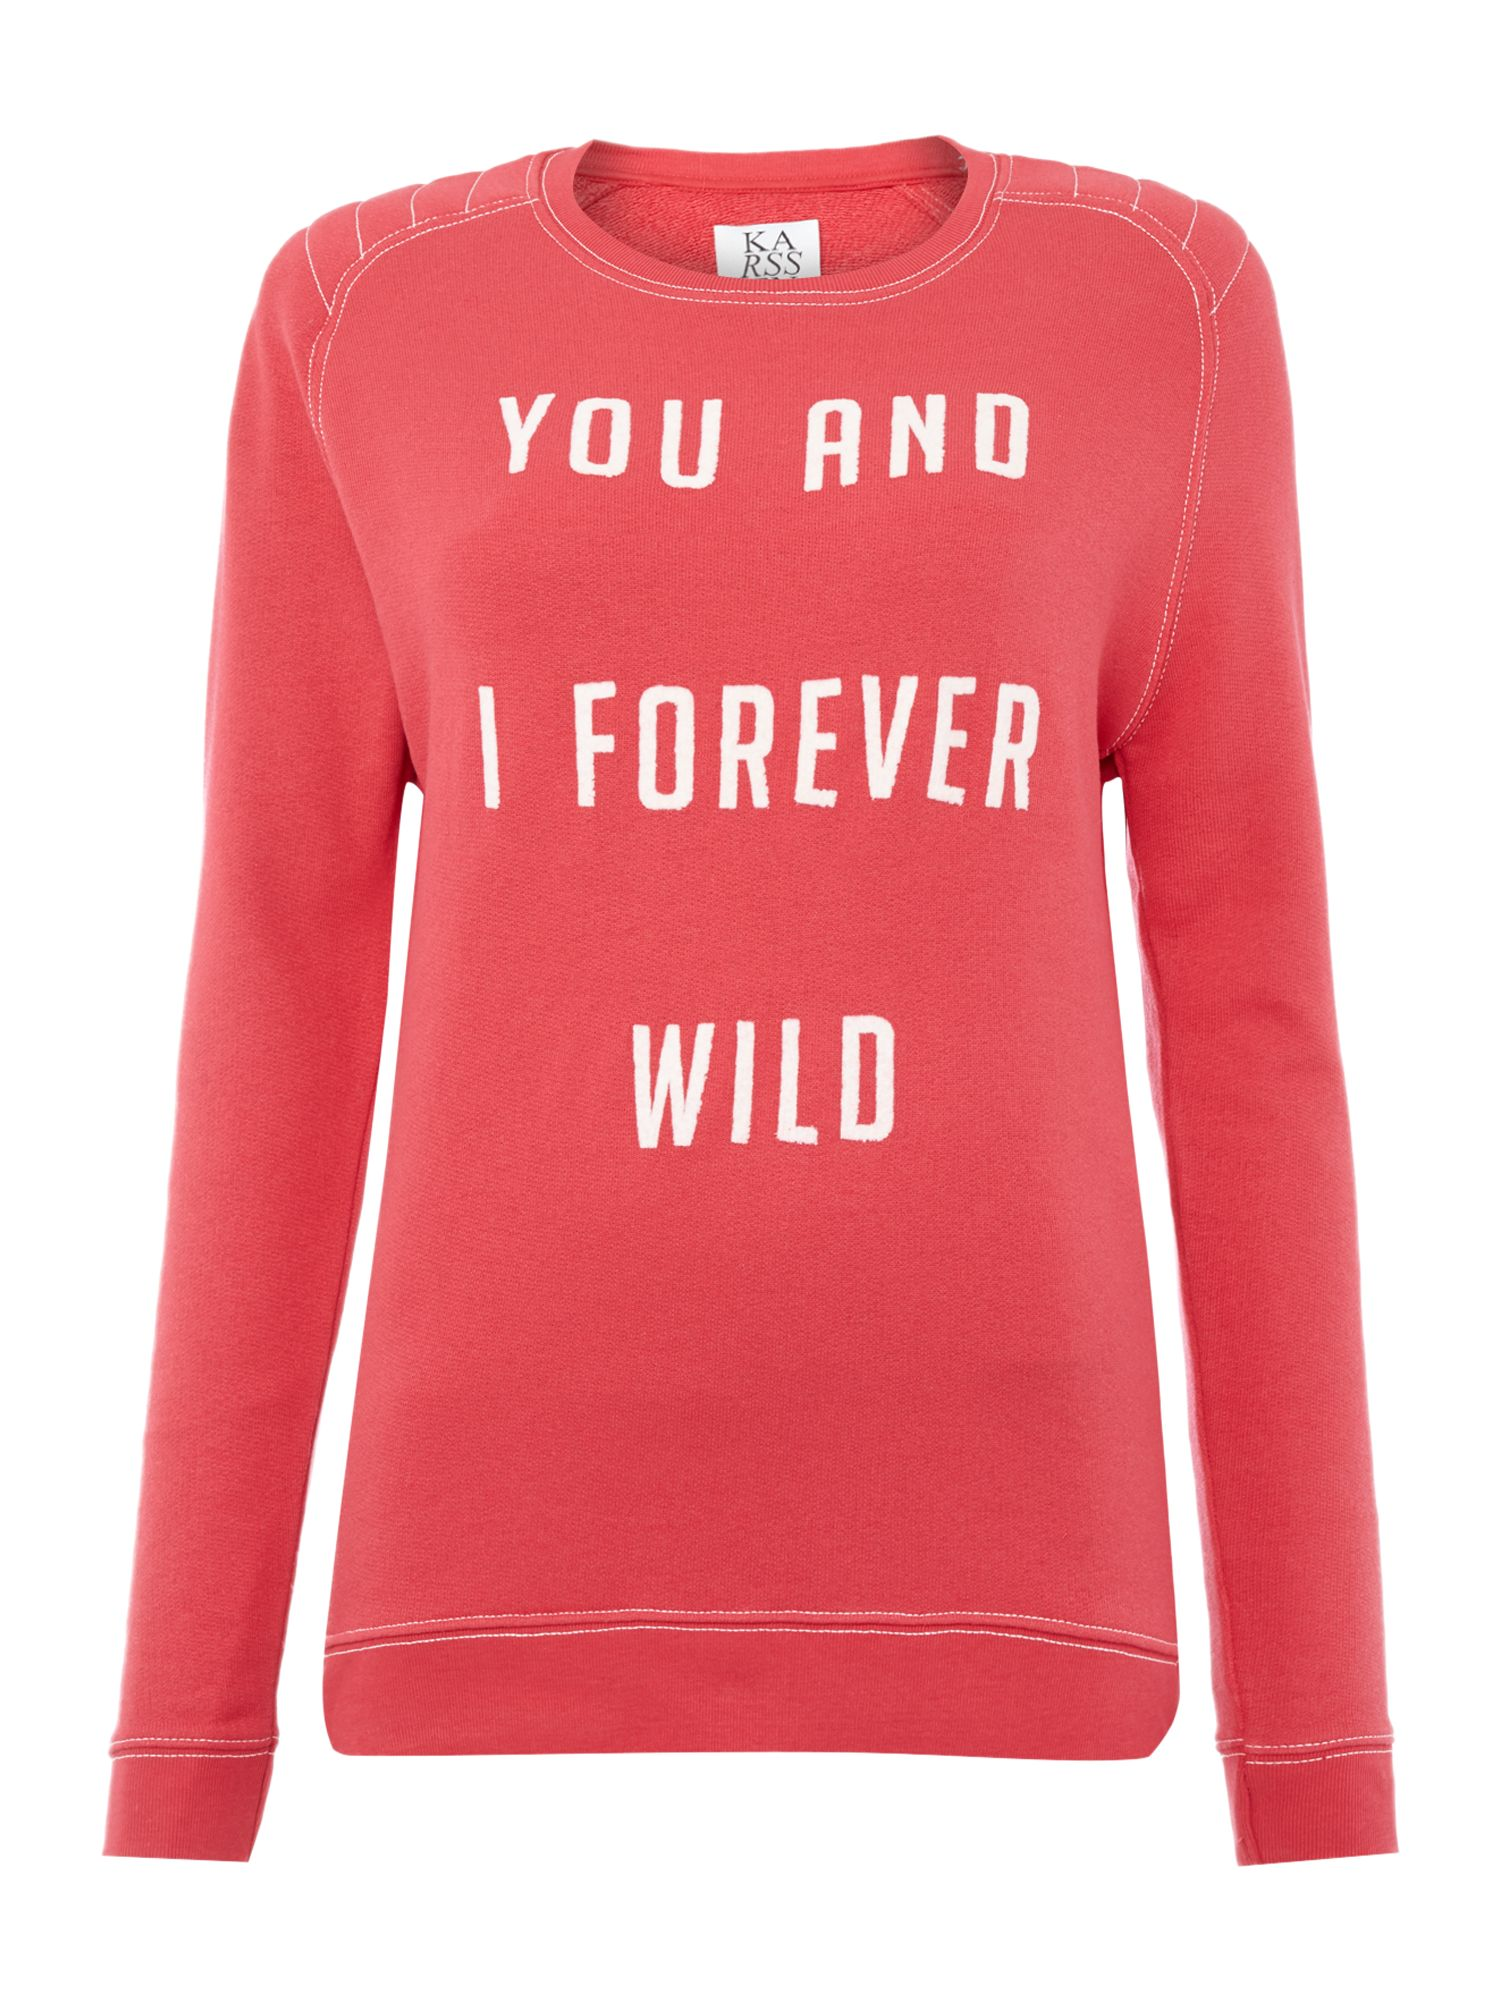 Zoe Karssen Knitwear Sweatshirt, Red